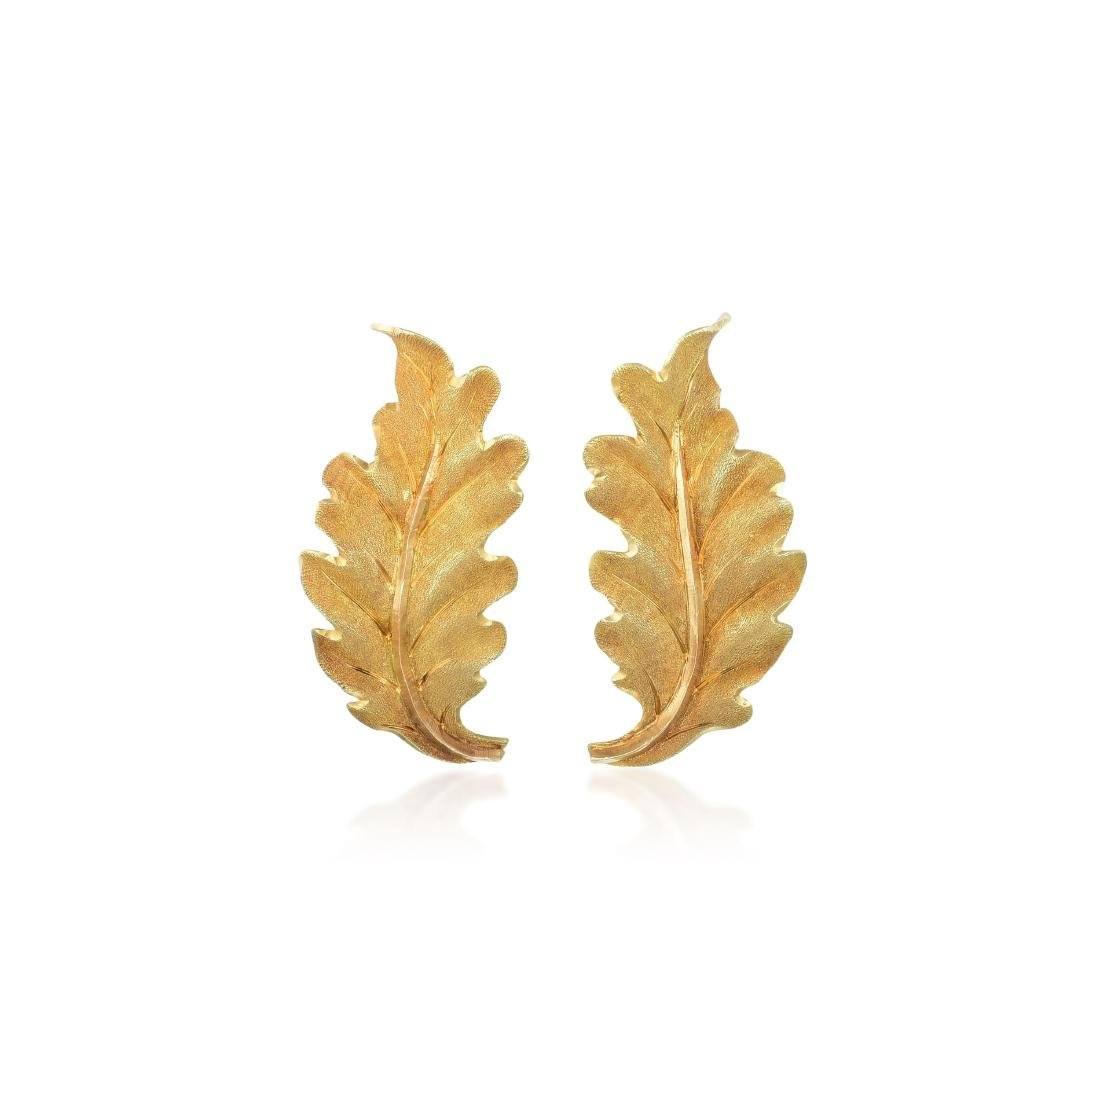 Buccellati Leaf Earrings